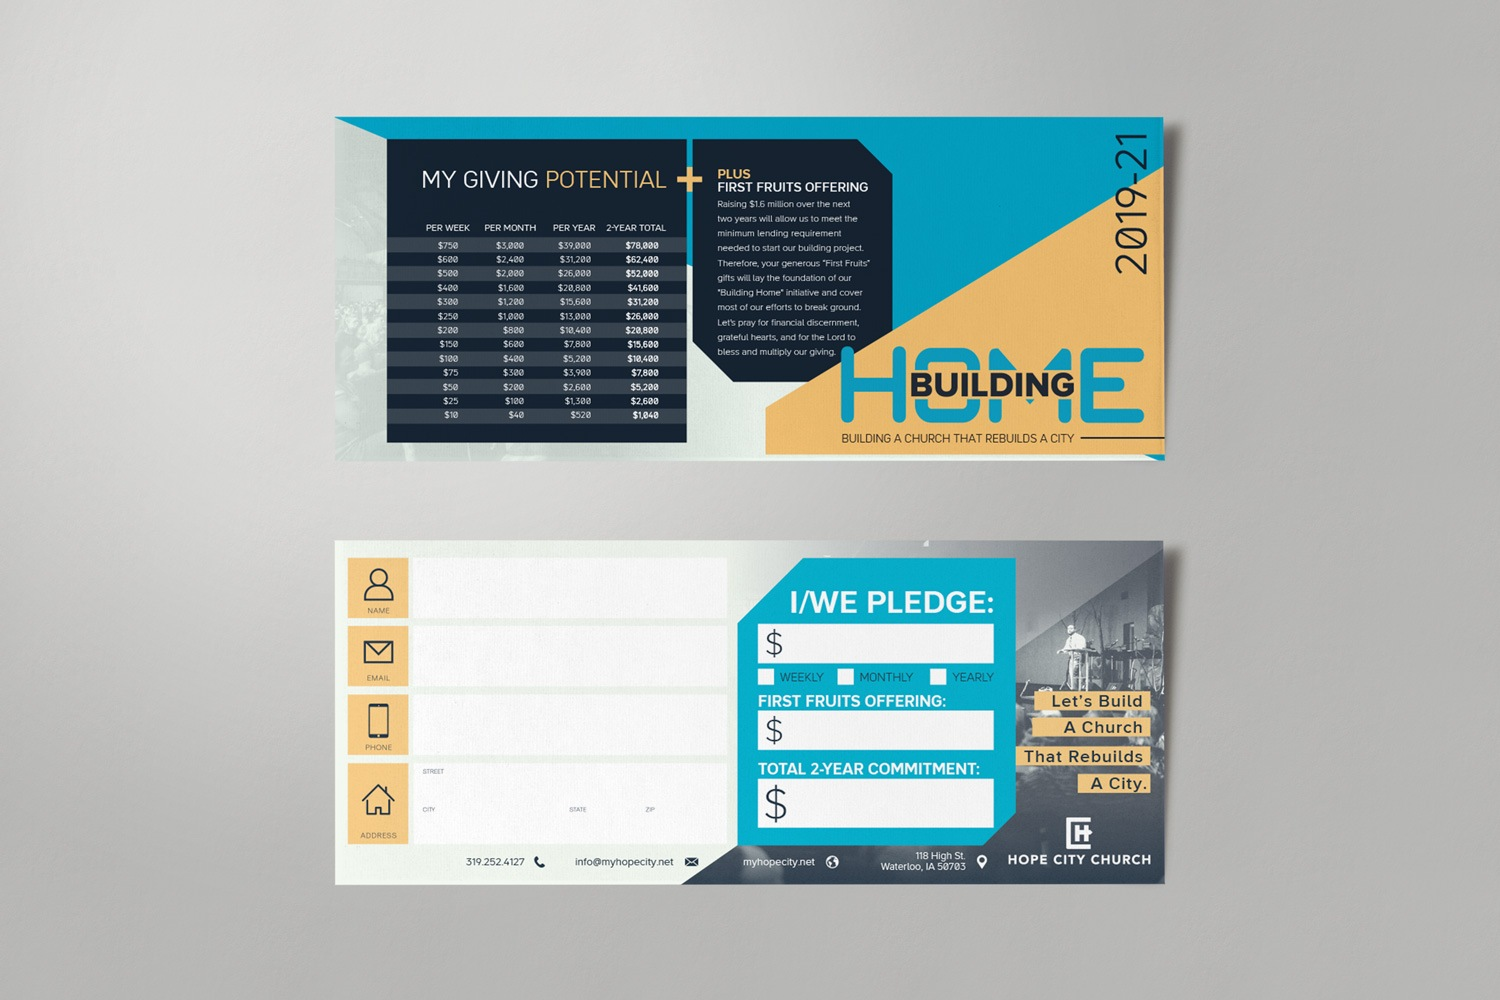 Commitment, pledge cards for church fundraising and capital campaign materials, ideas and samples by Abstract Union